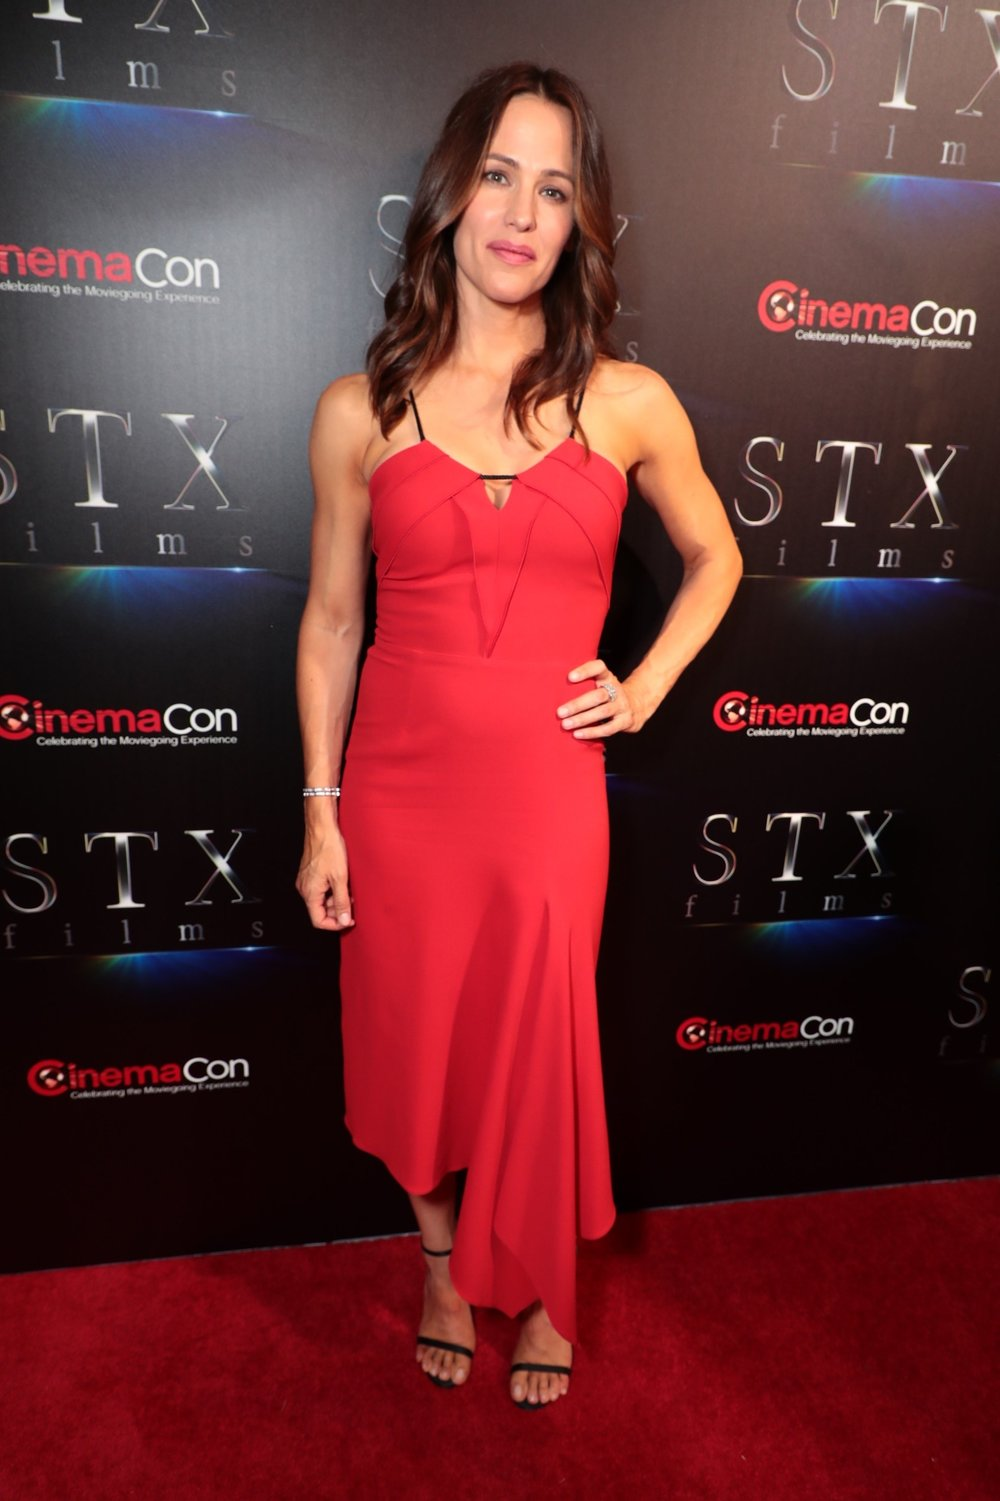 Jennifer Garner attends STXfilms' 2018 CinemaCon Presentation at The Colosseum of Caesars Palace, Las Vegas, NV Tuesday, April 24, 2018.